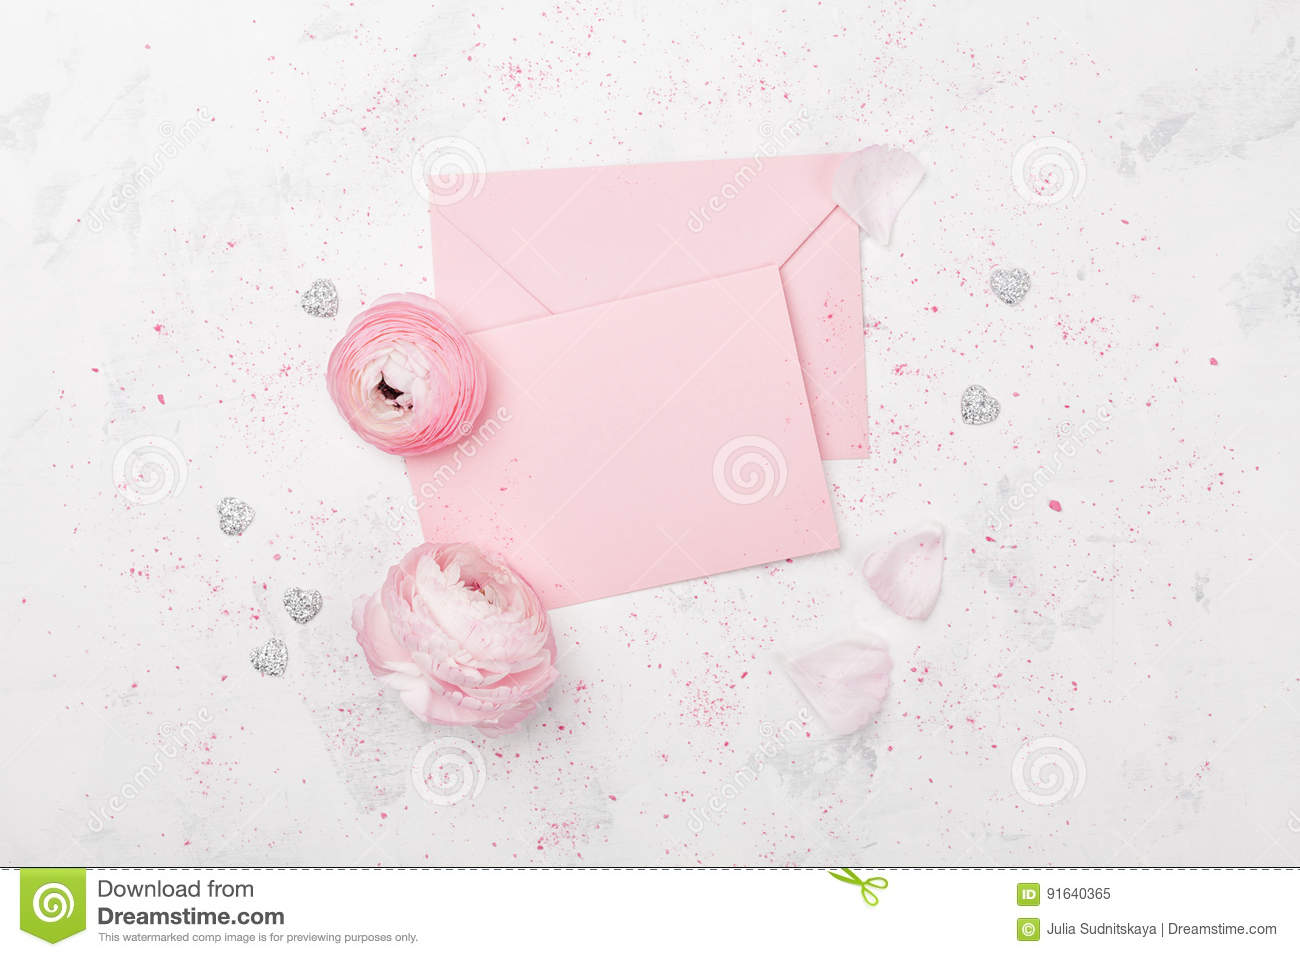 White Table Top View On Pink Paper Blank And Ranunculus Flower On White Table Top View For Wedding Mockup Or Greeting Paper Blank And Ranunculus Flower On White Table Top View For